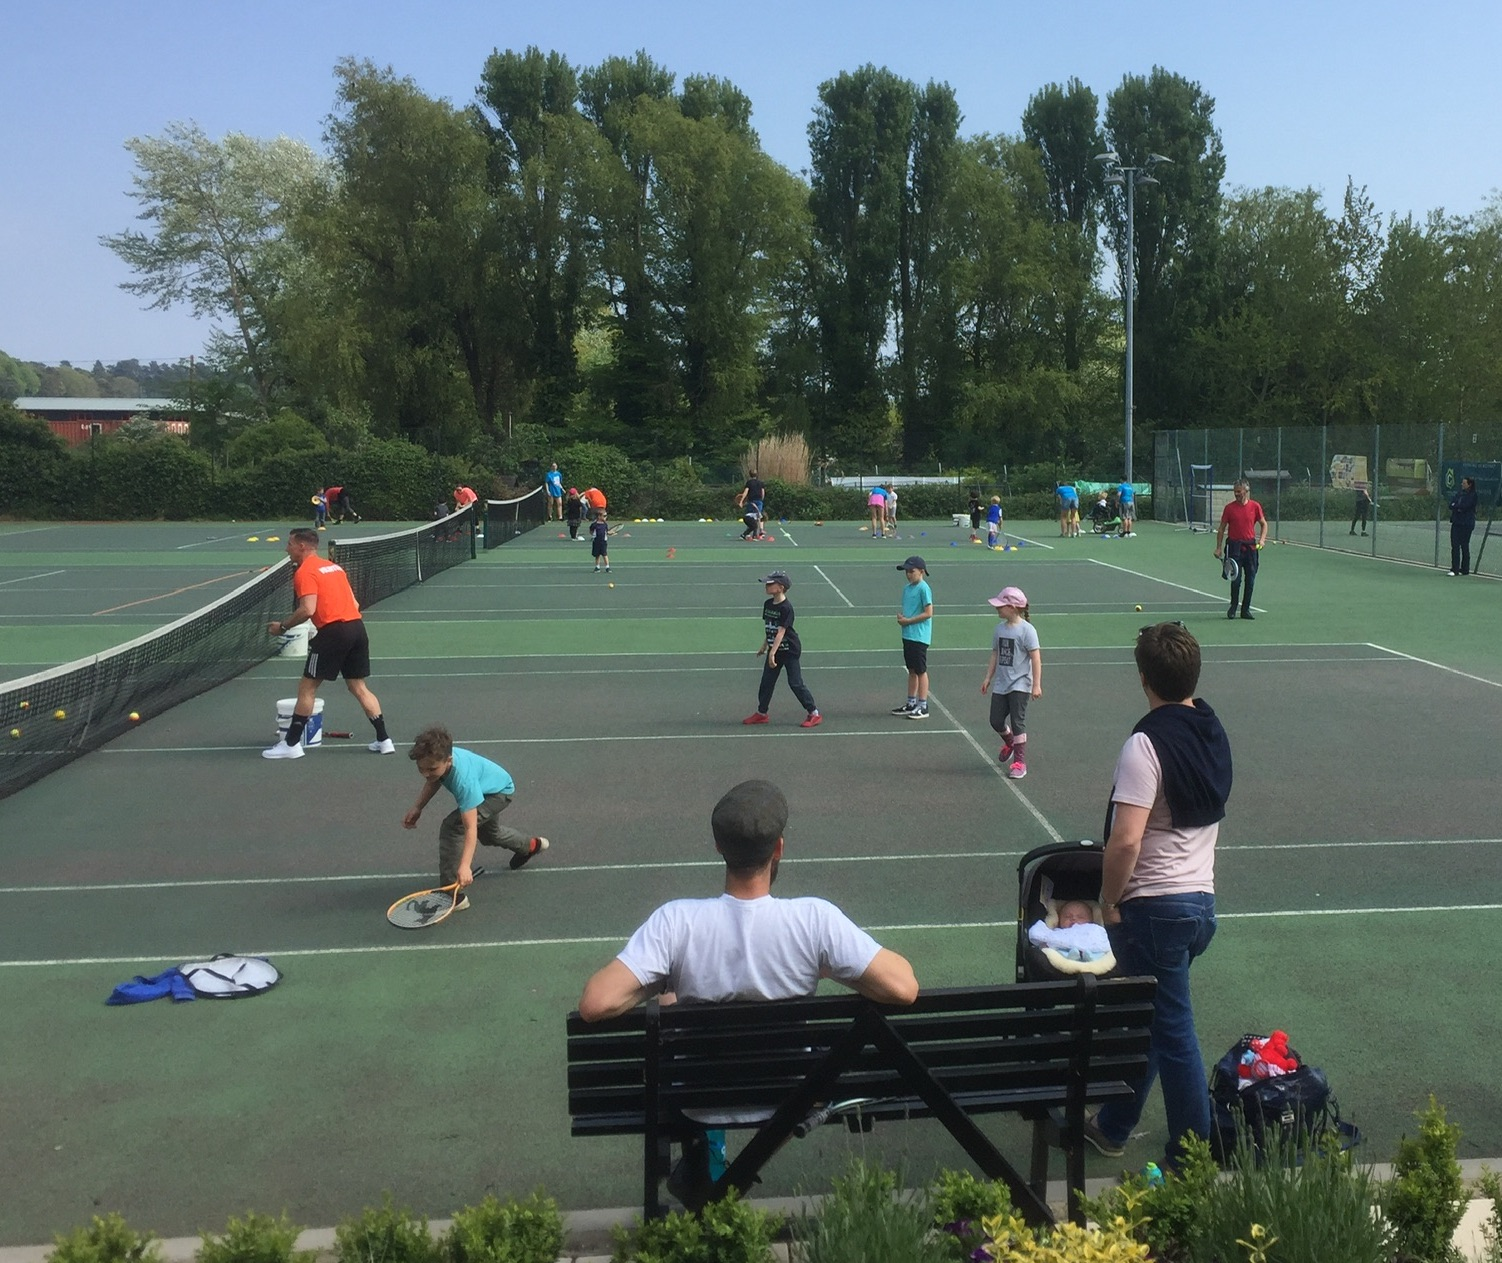 Watching the tennis players at Woodbridge Tennis Club in Suffolk